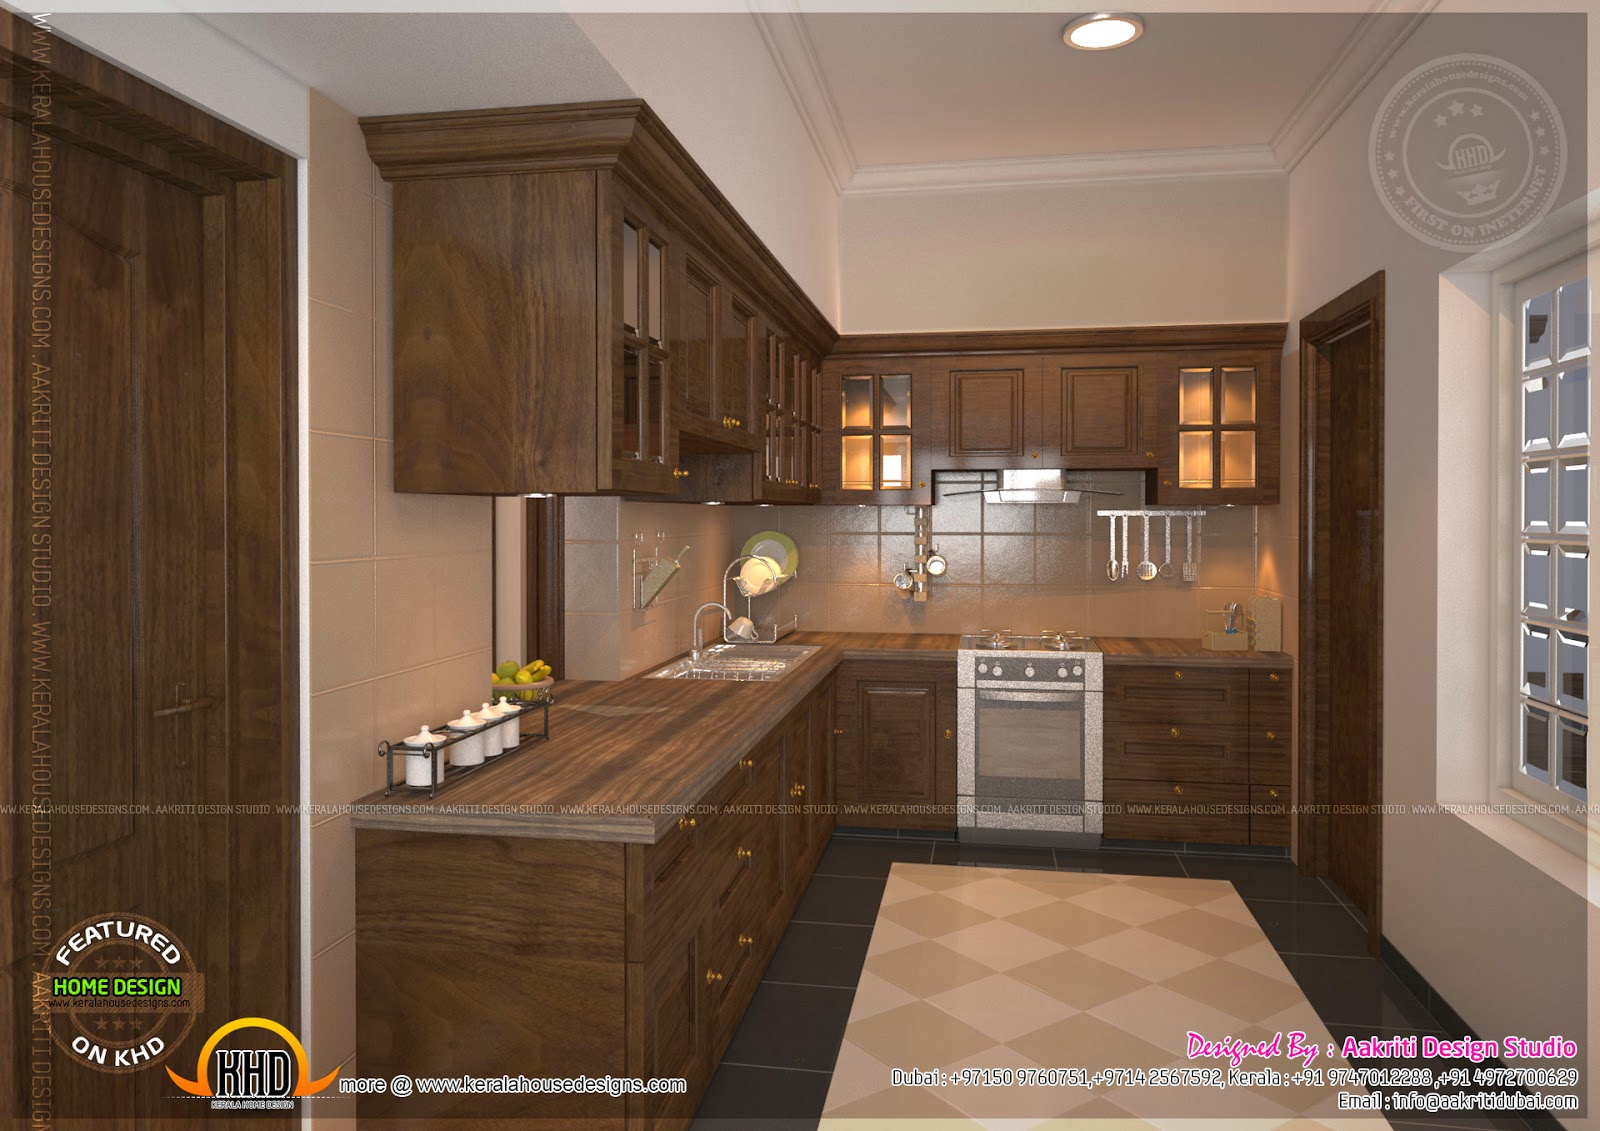 Kitchen Design Ideas In Sri Lanka simple kitchen design in kerala designing cochin 2015 inspiration